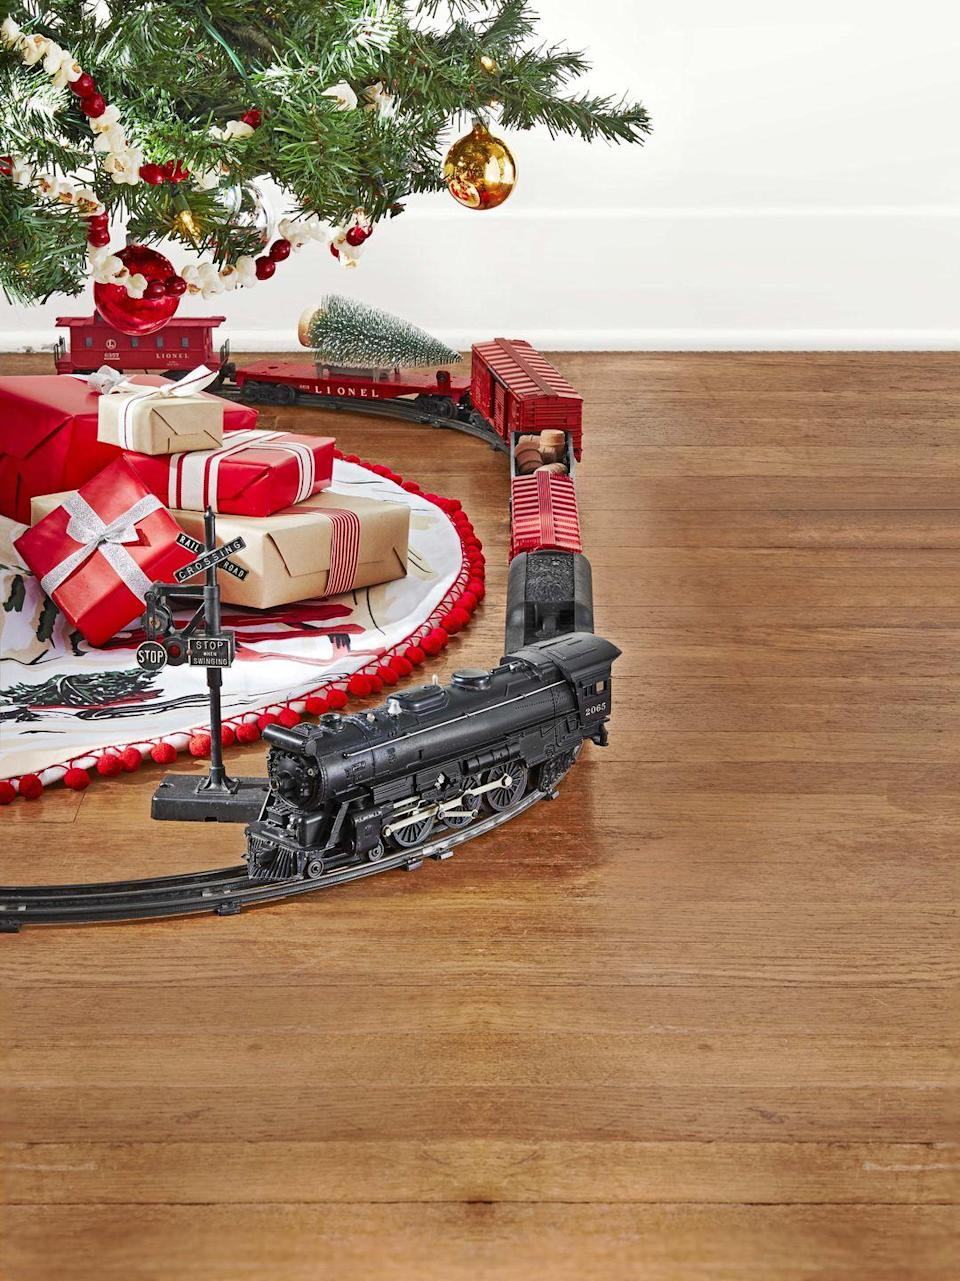 """<p>Young inventor Joshua Lionel Cowen launched his then-New York City-based Lionel Manufacturing Co. in 1900 with a standard gauge electric locomotive. After World War II, Lionel expanded its O-gauge steam locomotive offerings, including a series of """"O27"""" gauge train sets, like the one pictured here. Priced as low as $19.95, the starter sets had plenty of tempting add-on cars and accessories that could be acquired year after year. </p><p><strong>What it's worth:</strong> Up to $500</p>"""